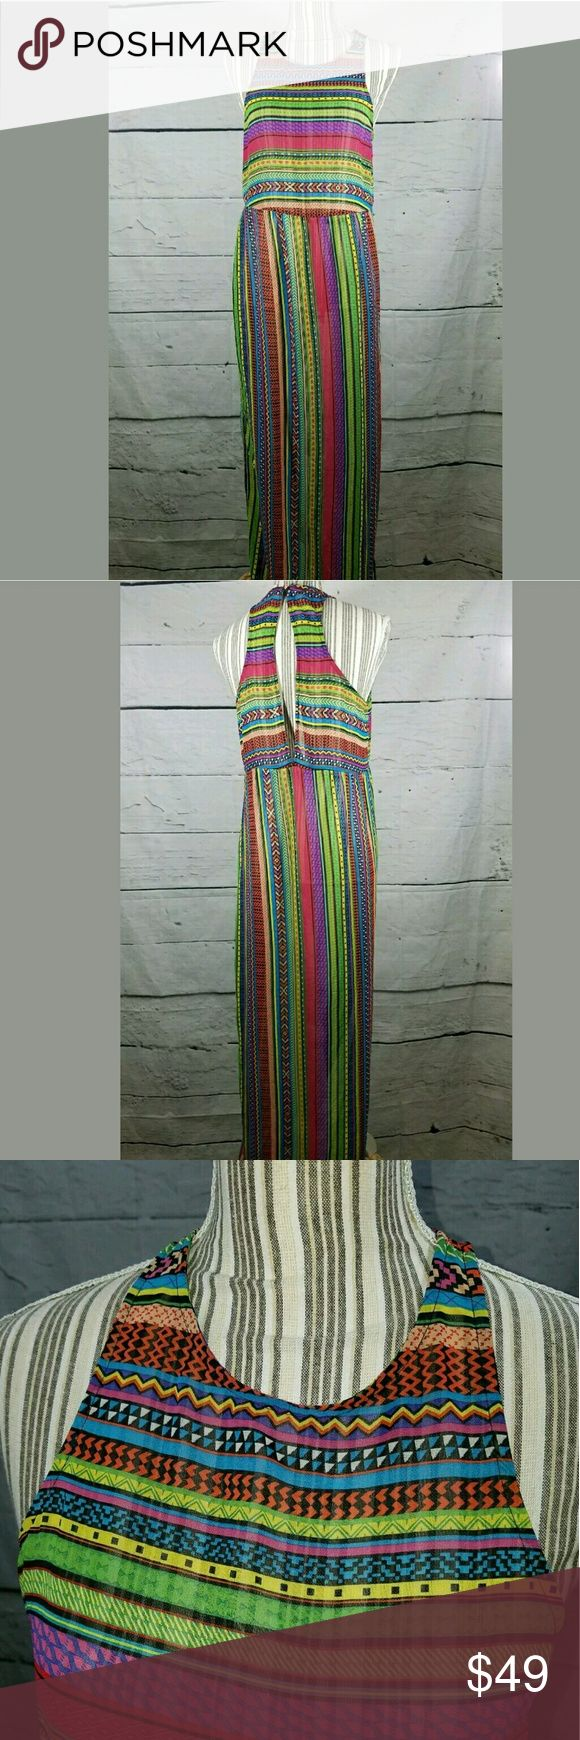 ??Anthropologie Staring at Stars Sheer Beach Dress Anthropologie Staring at Stars Sheer Aztec Beach Maxi Dress Side Splits Medium  Cute dress for the beach or add a slip dress underneath and wear it anywhere.   19 inches pit to pit.  60 inches long.  30 inch waist.  22 inch hips.   LB Anthropologie Dresses Maxi